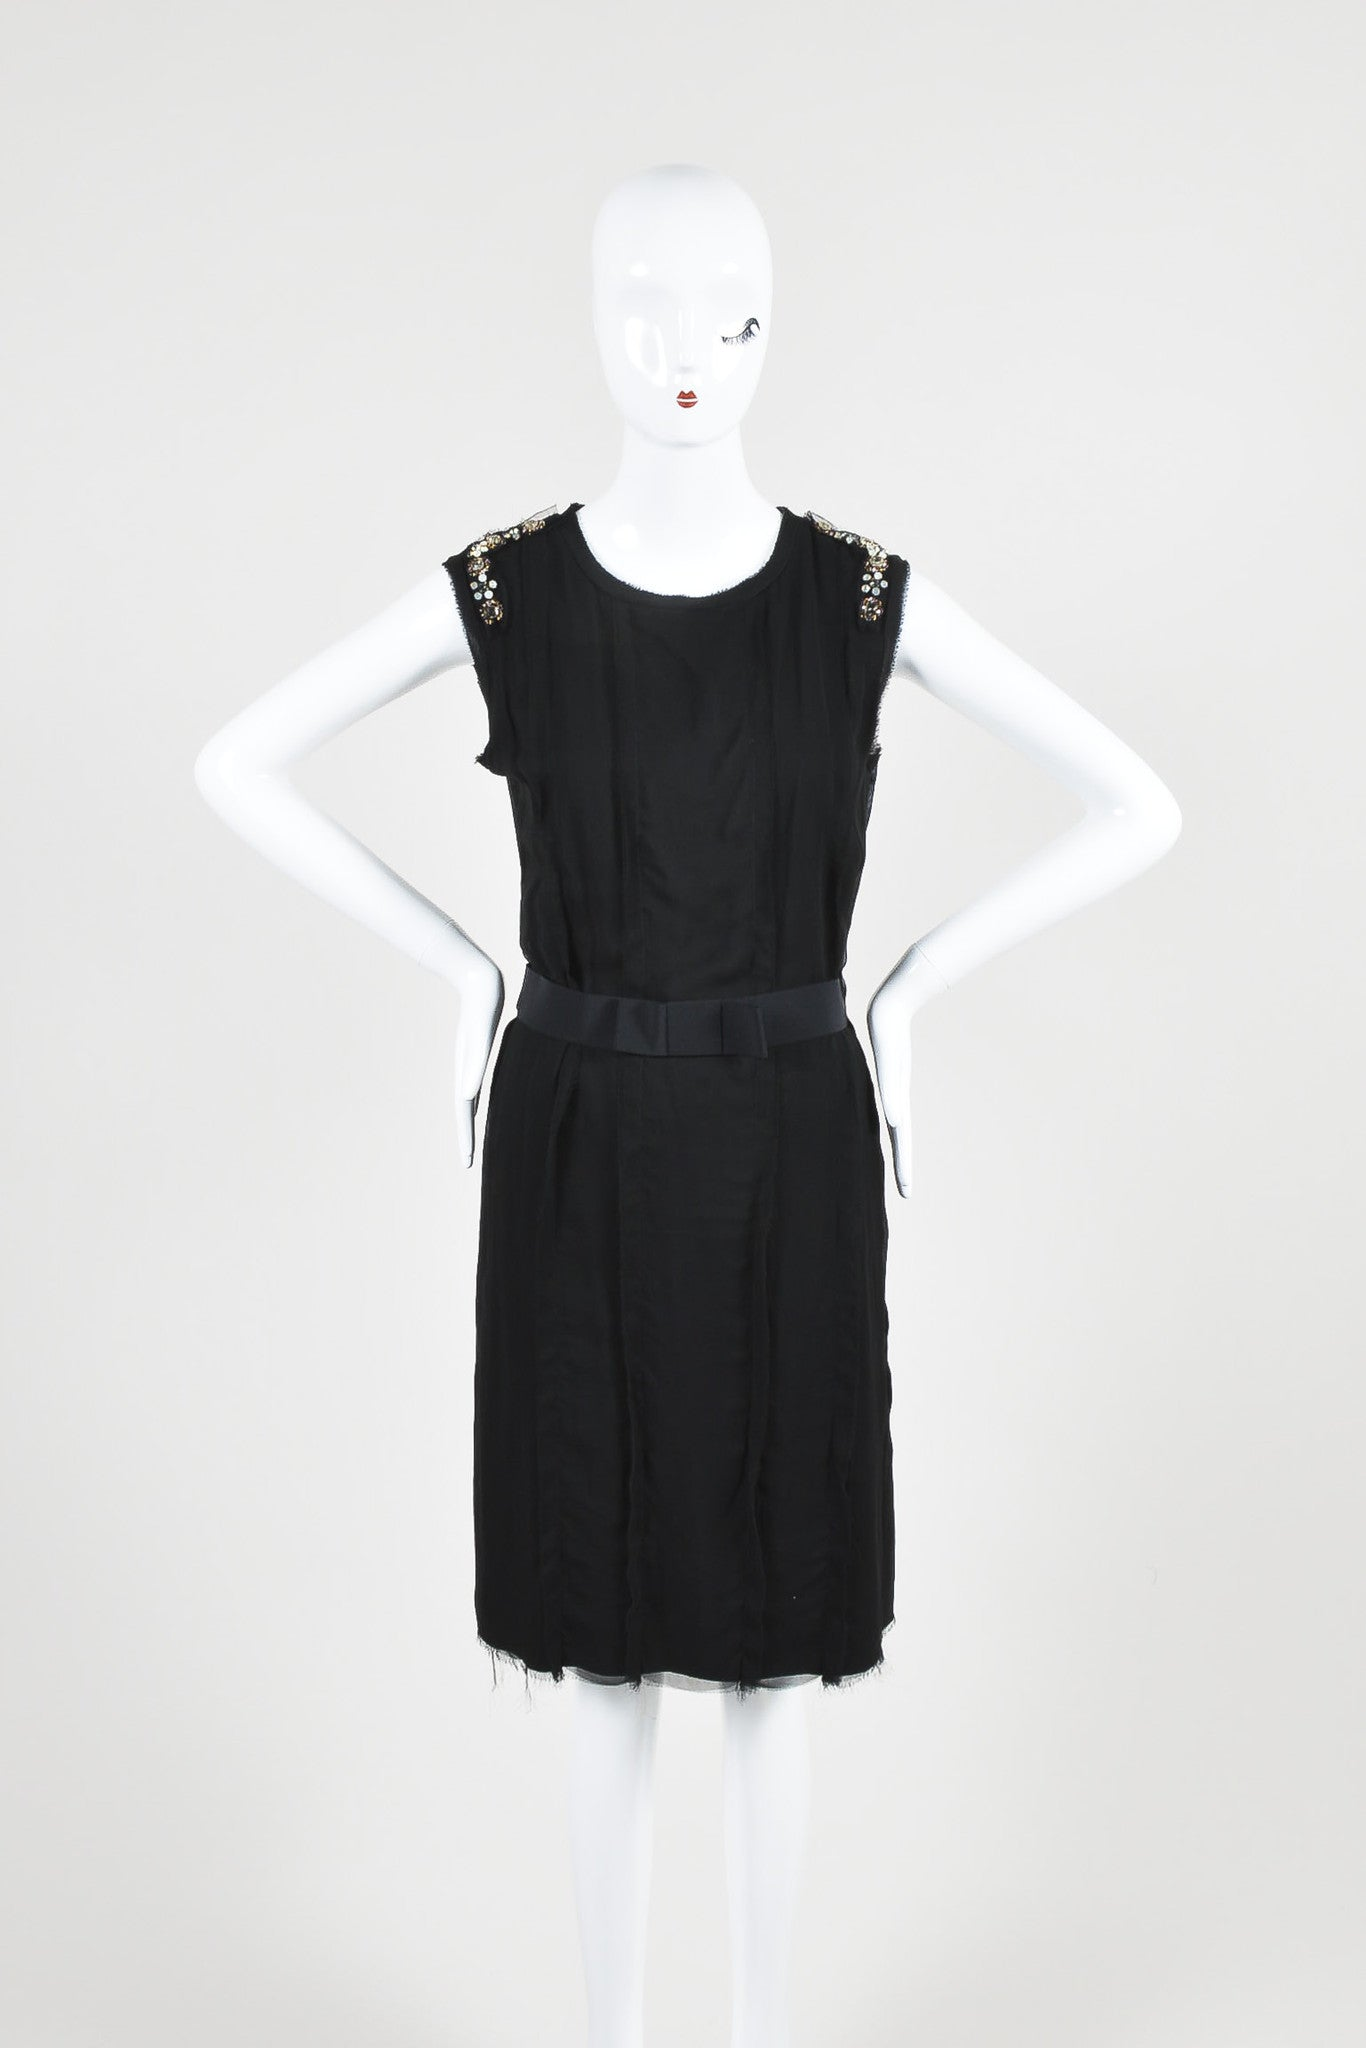 Lanvin Black Cotton Knit Chiffon Crystal Embellished Belted Sleeveless Dress Frontview